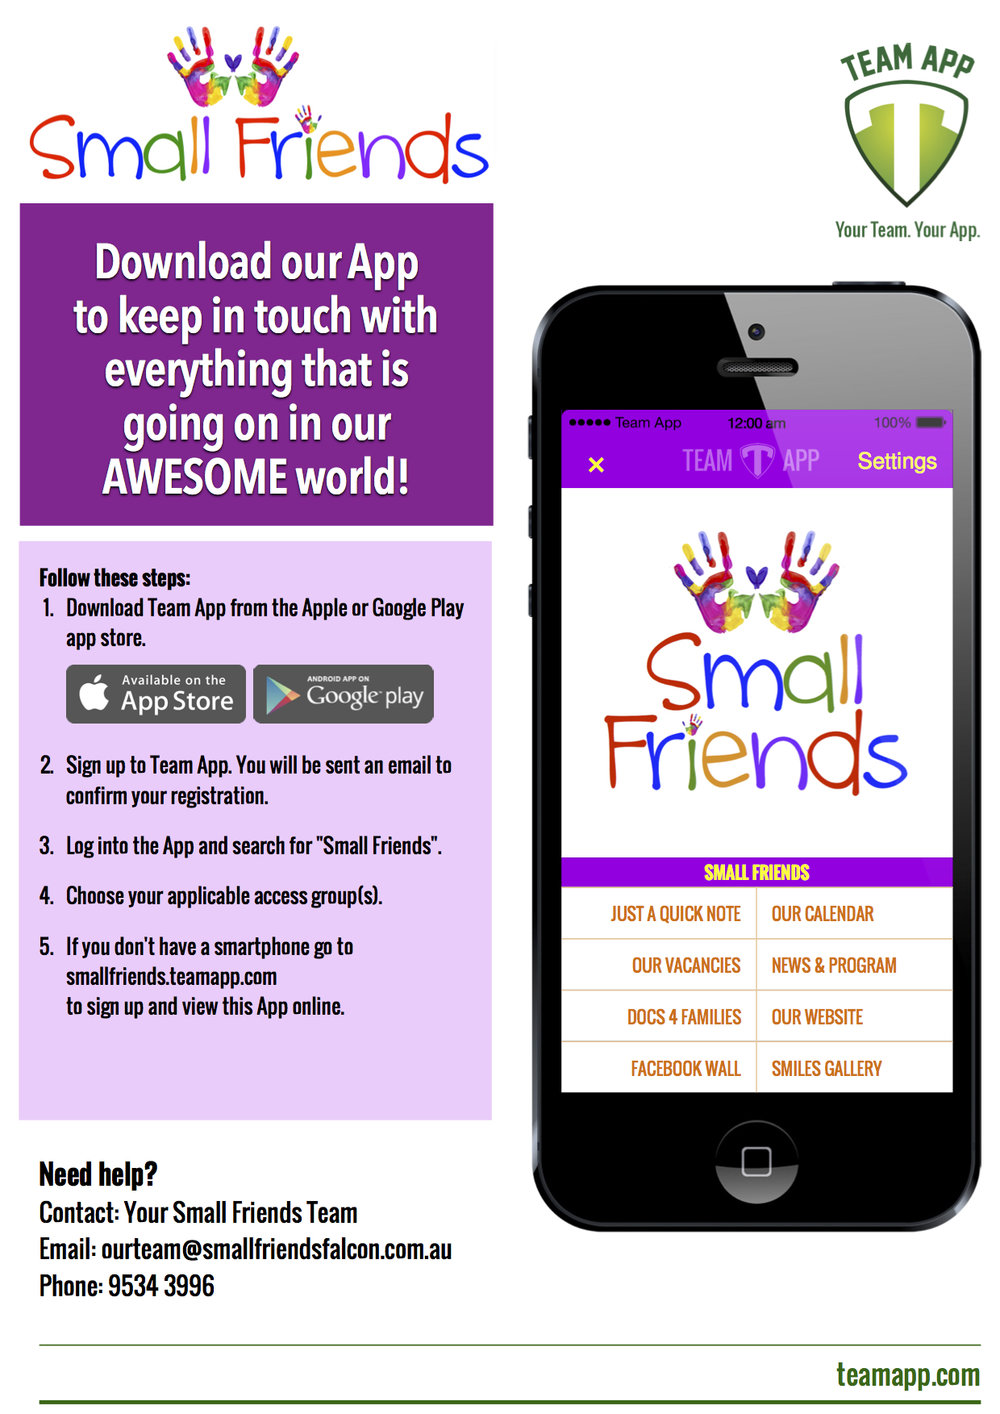 Small Friends App Info.jpg